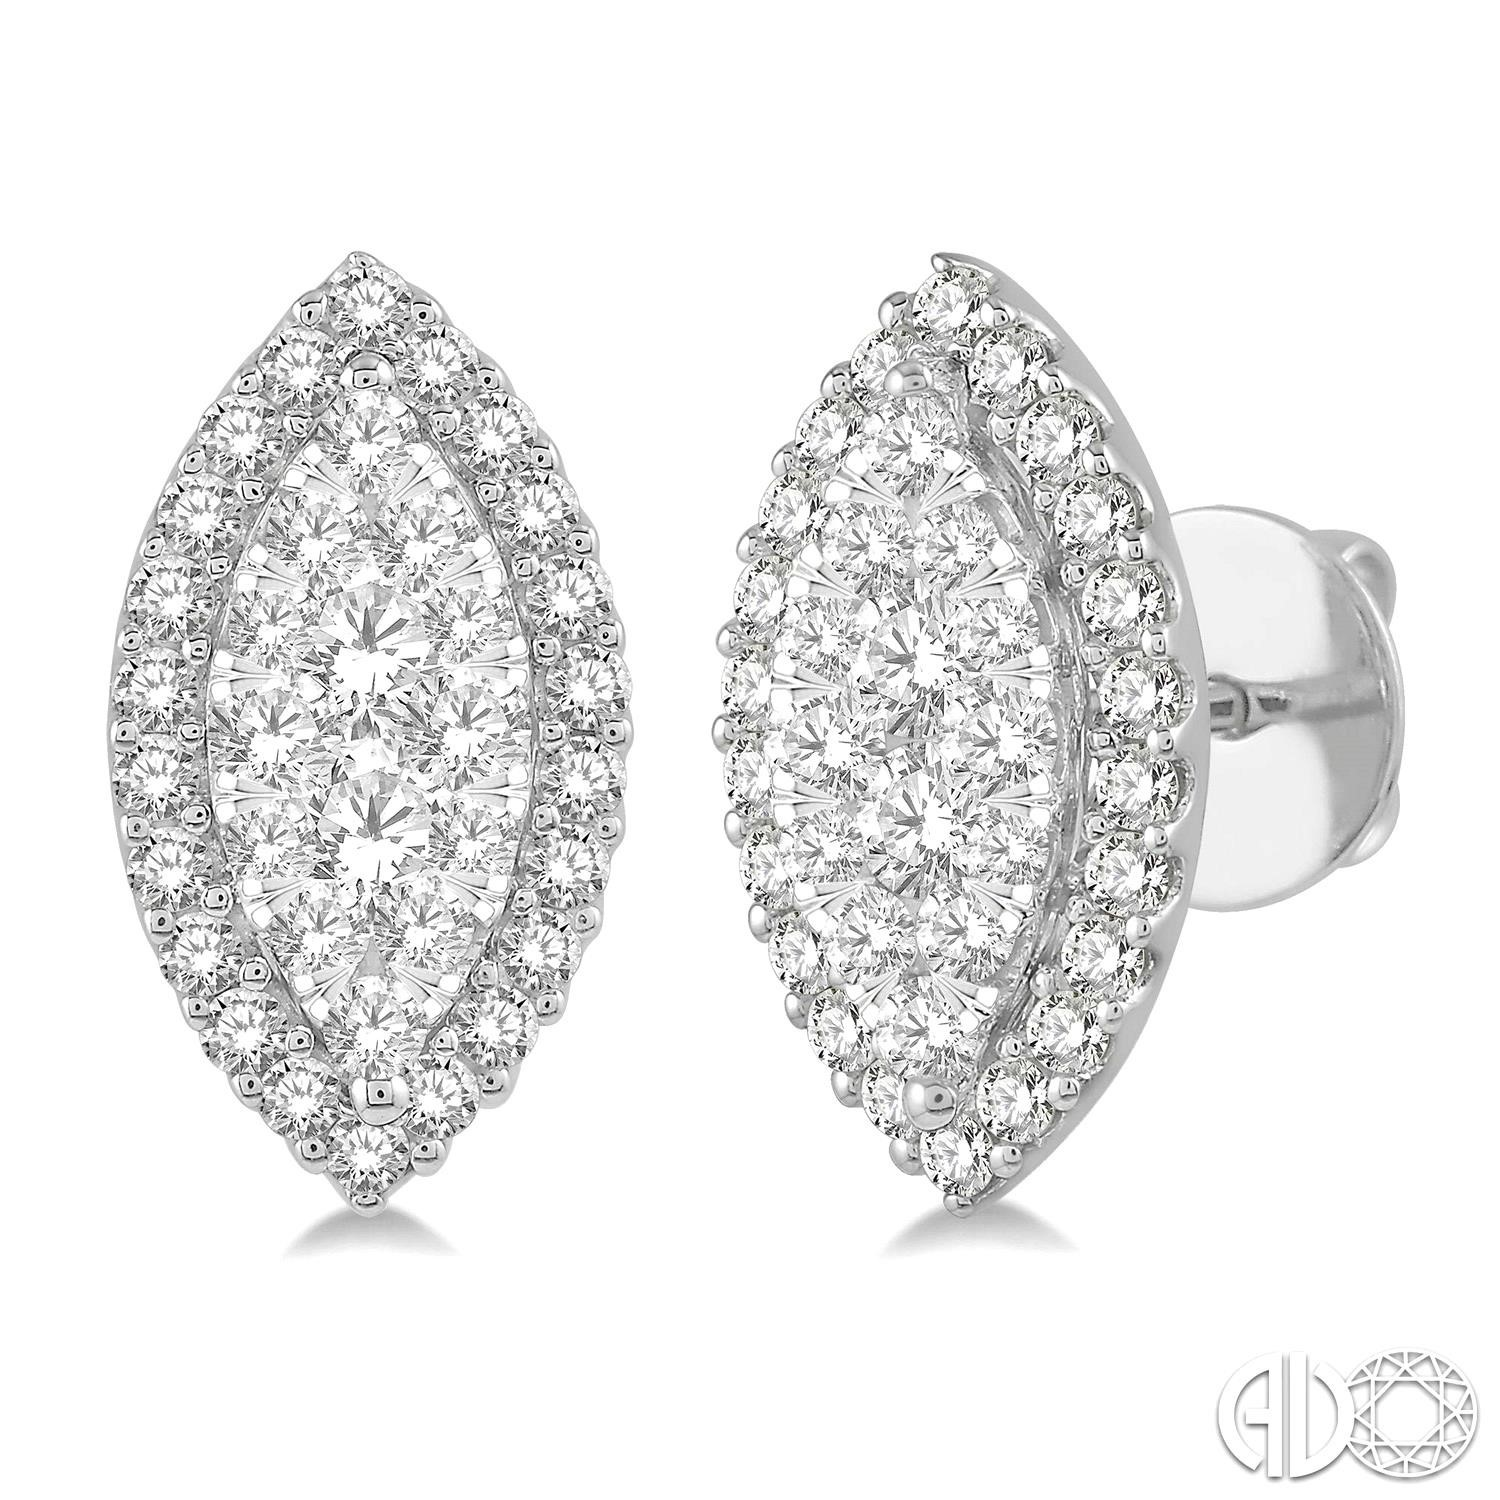 1 Ctw Marquise Shape Lovebright Round Cut Diamond Stud Earrings in 14K White Gold